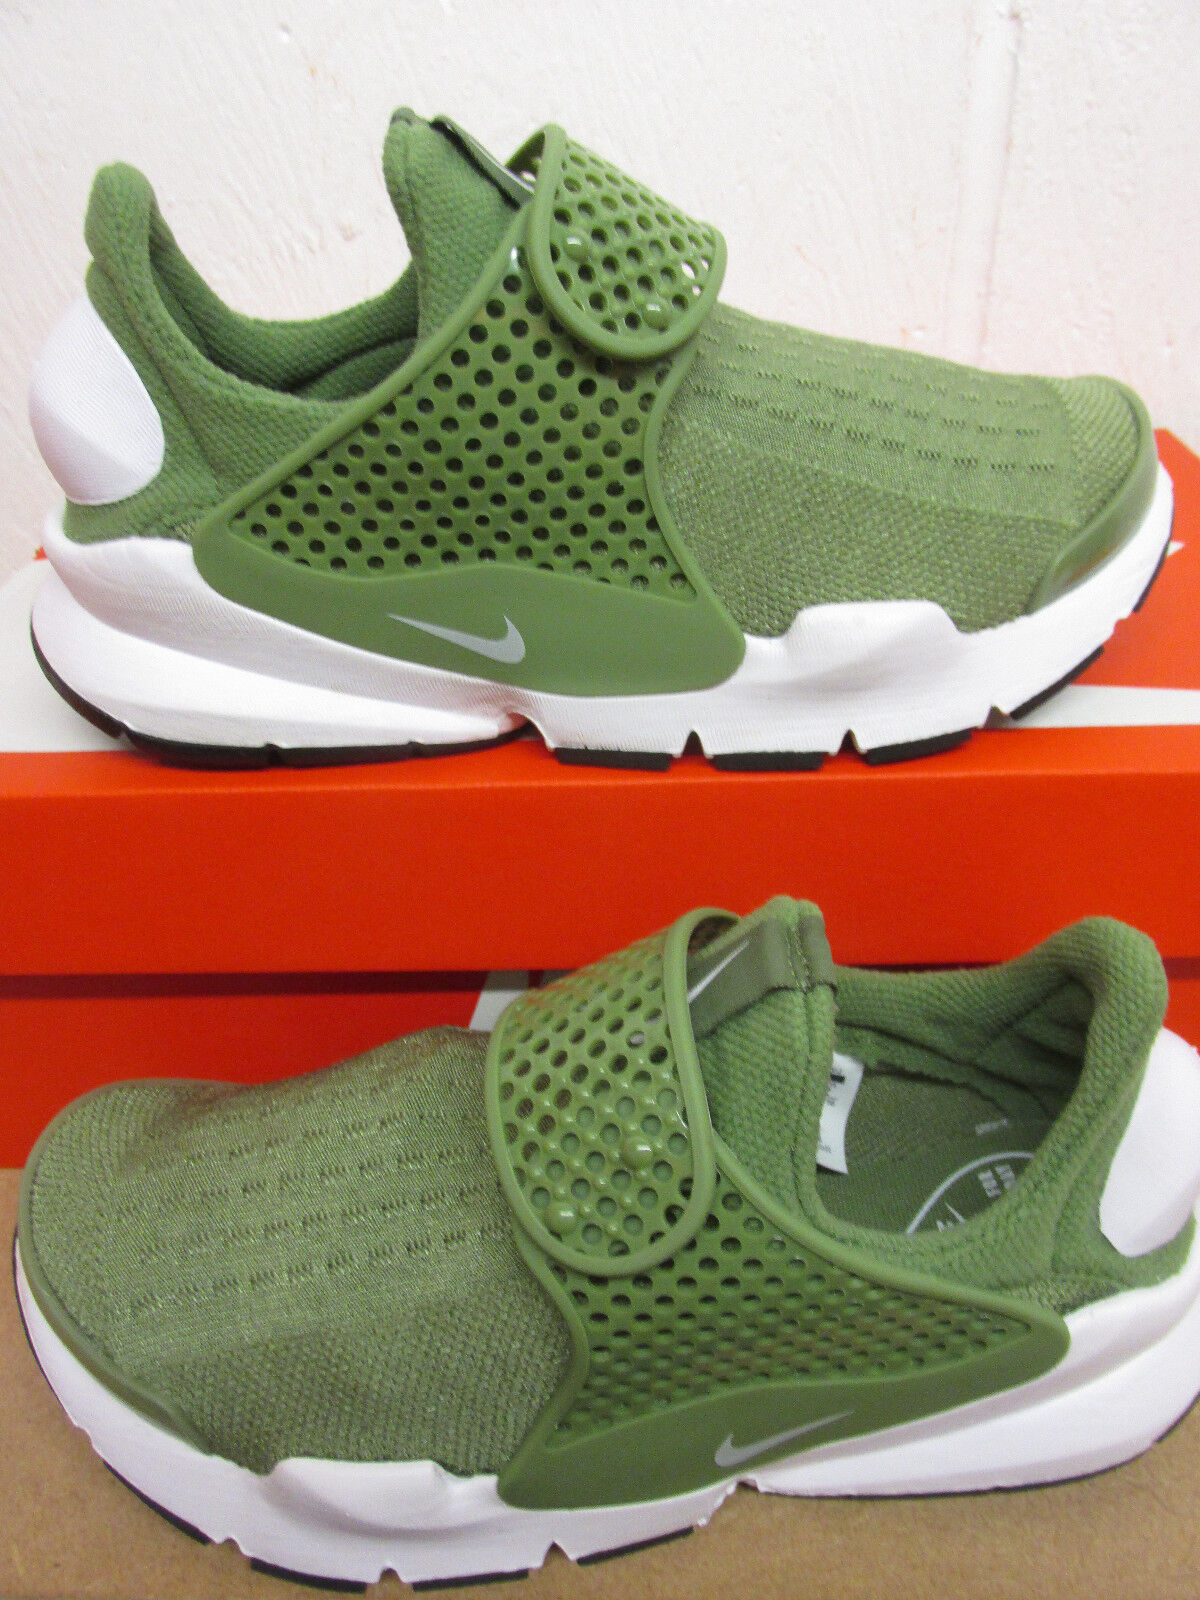 Nike Womens Sock Dart Running Trainers 848475 300 Sneakers Shoes